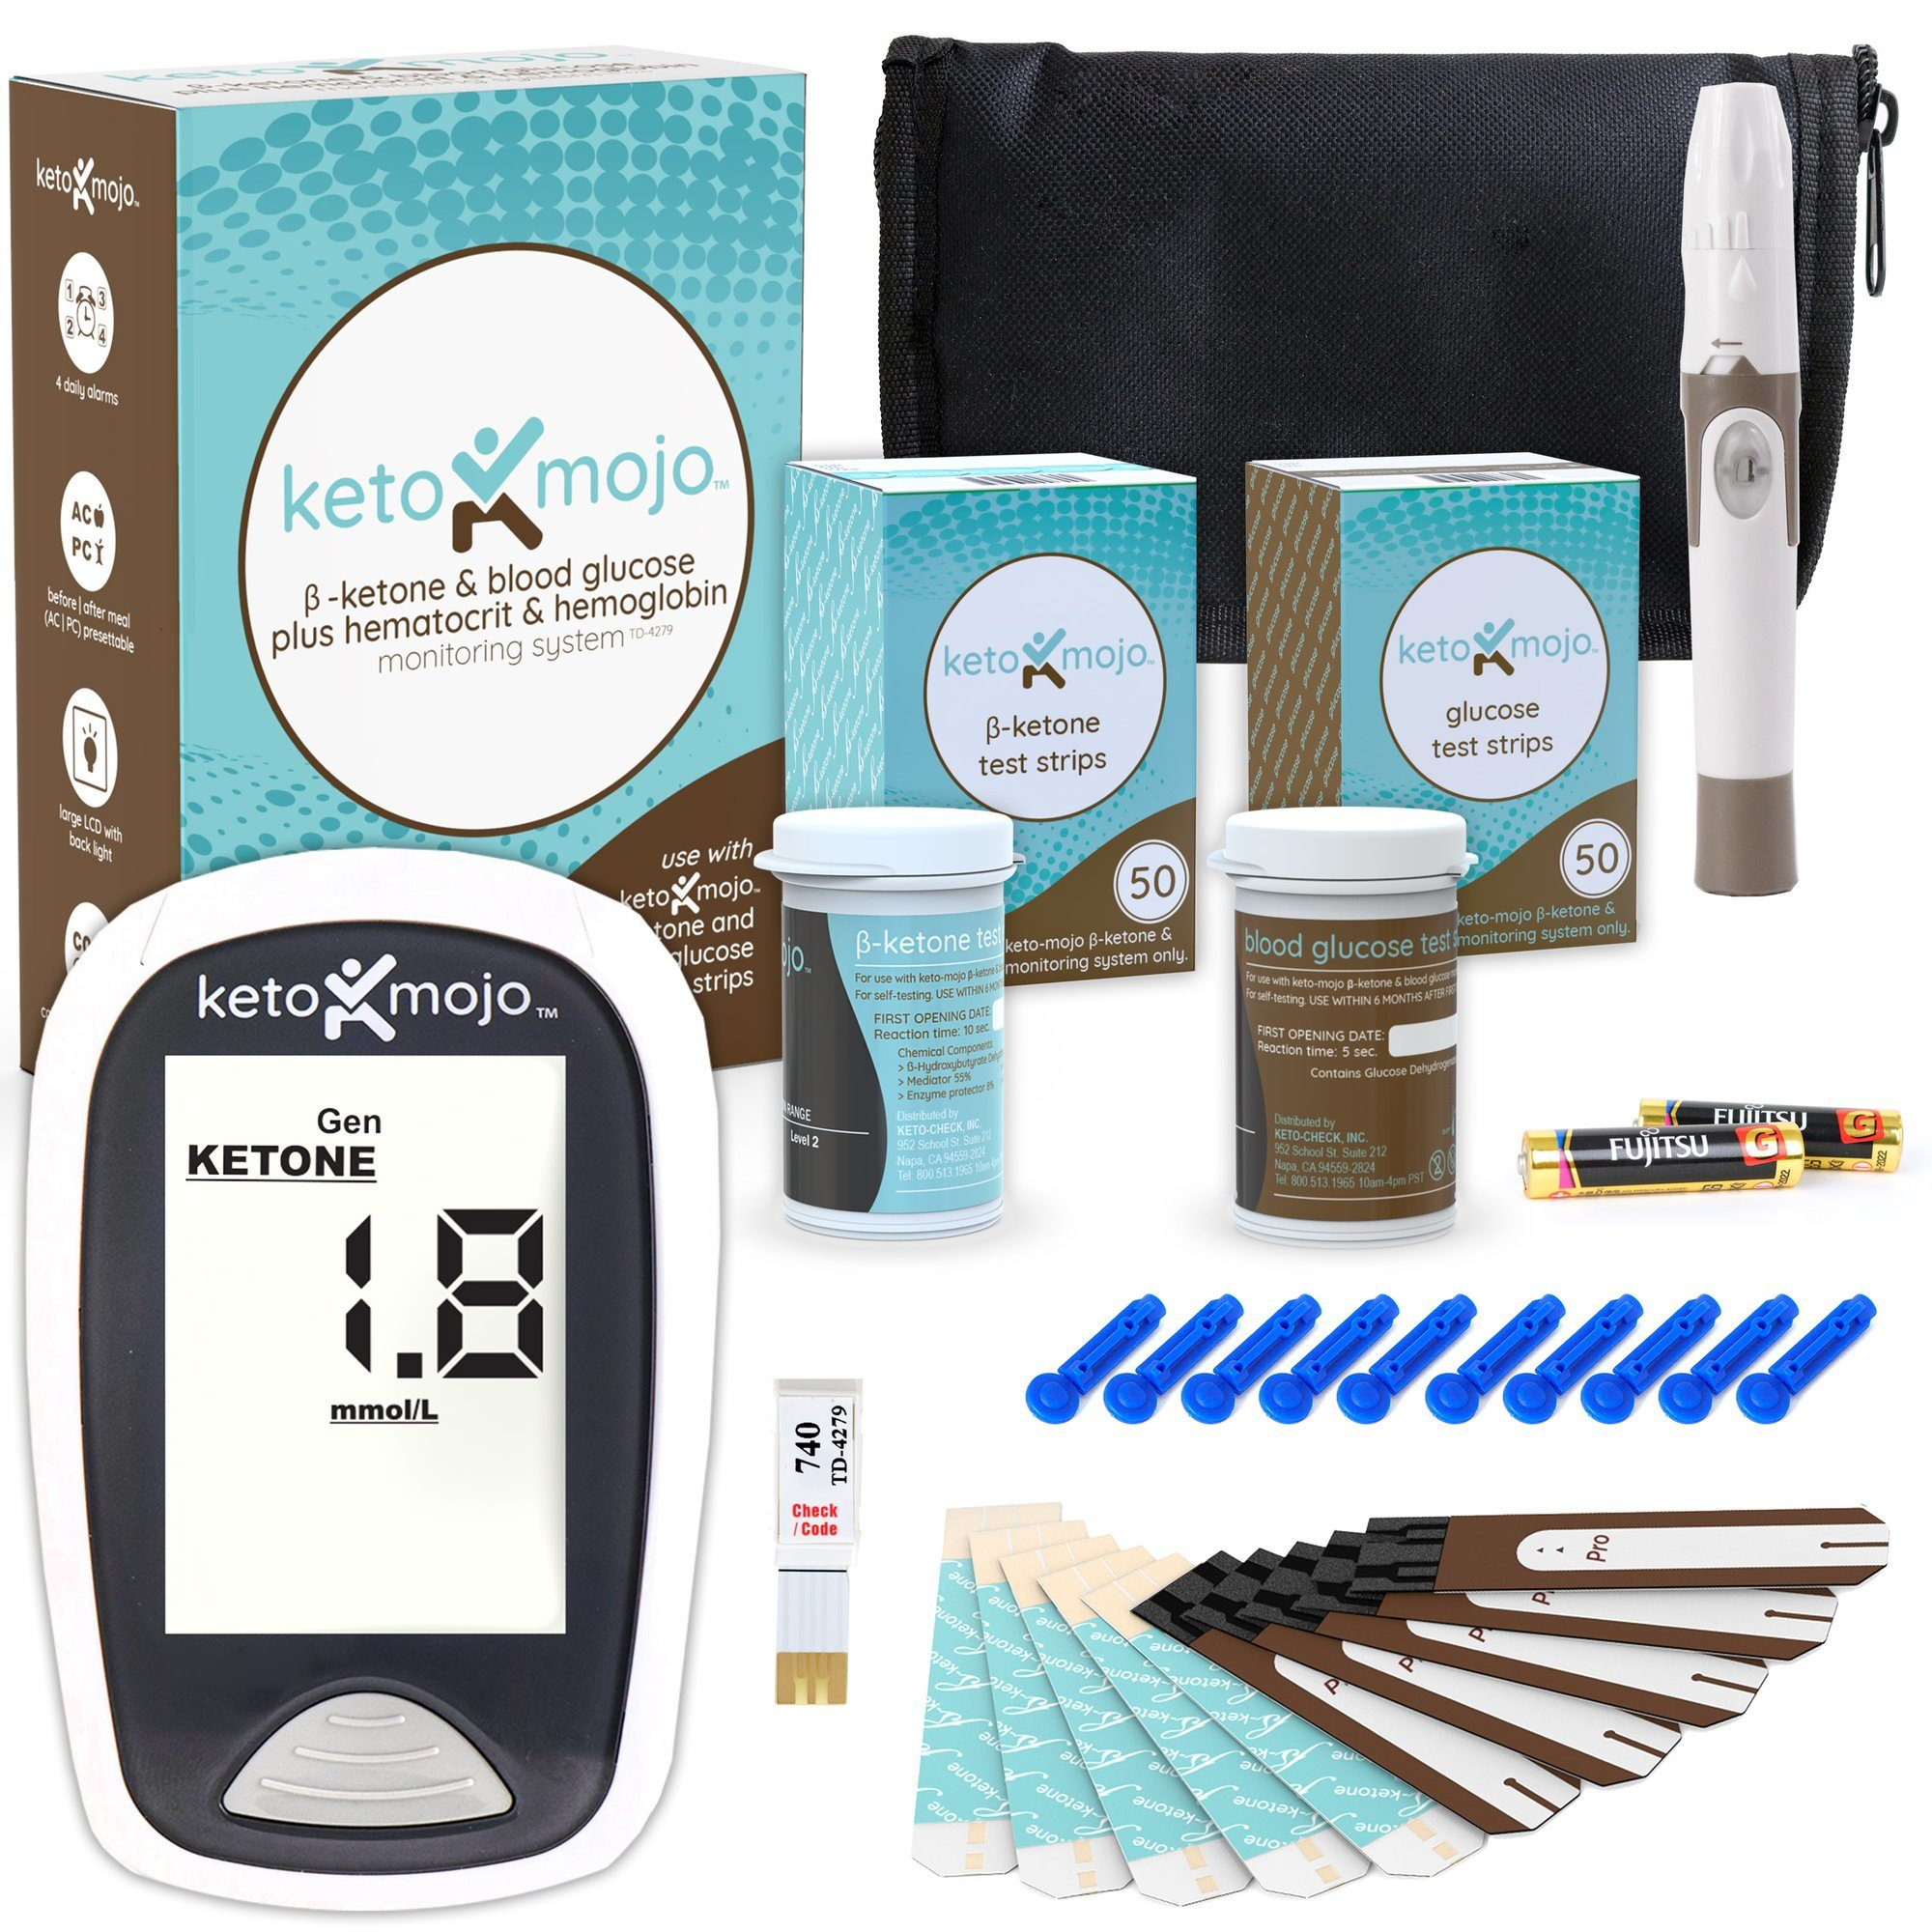 Keto-Mojo_Premium_Starter_Kit-_No_text_2000x